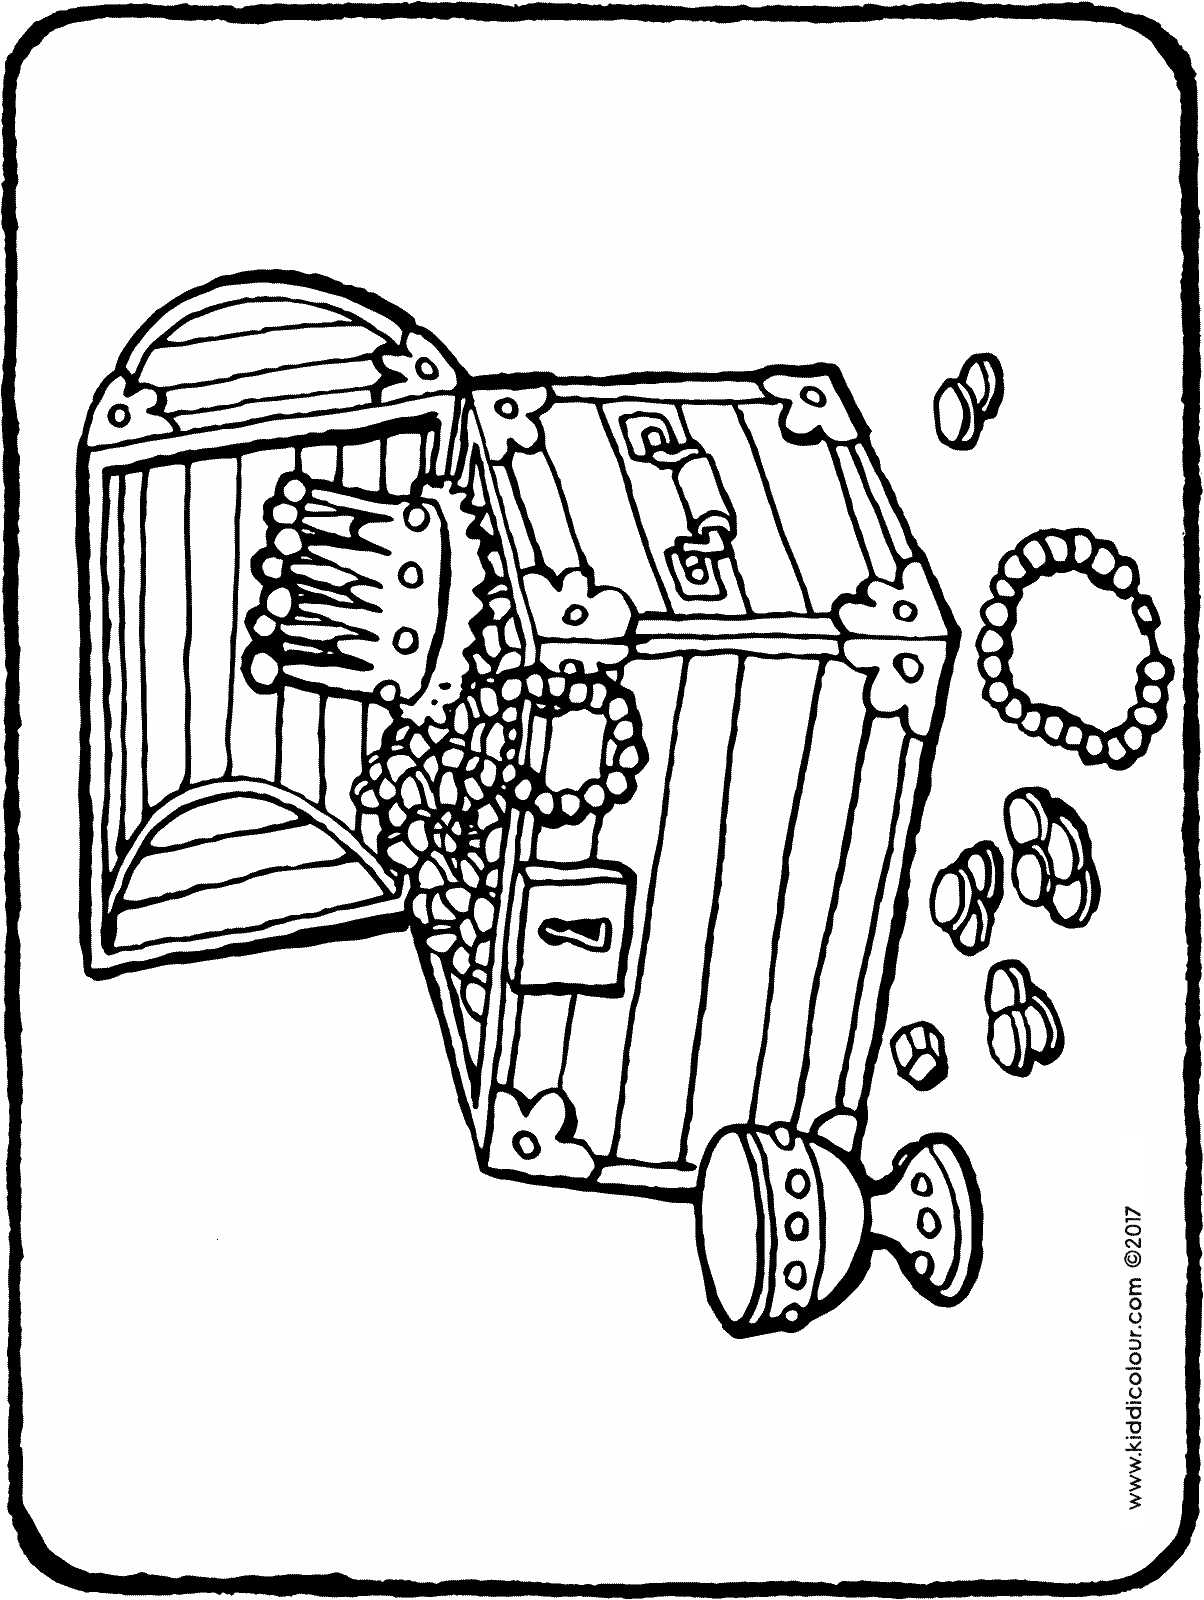 treasure chest colouring page drawing picture 01H